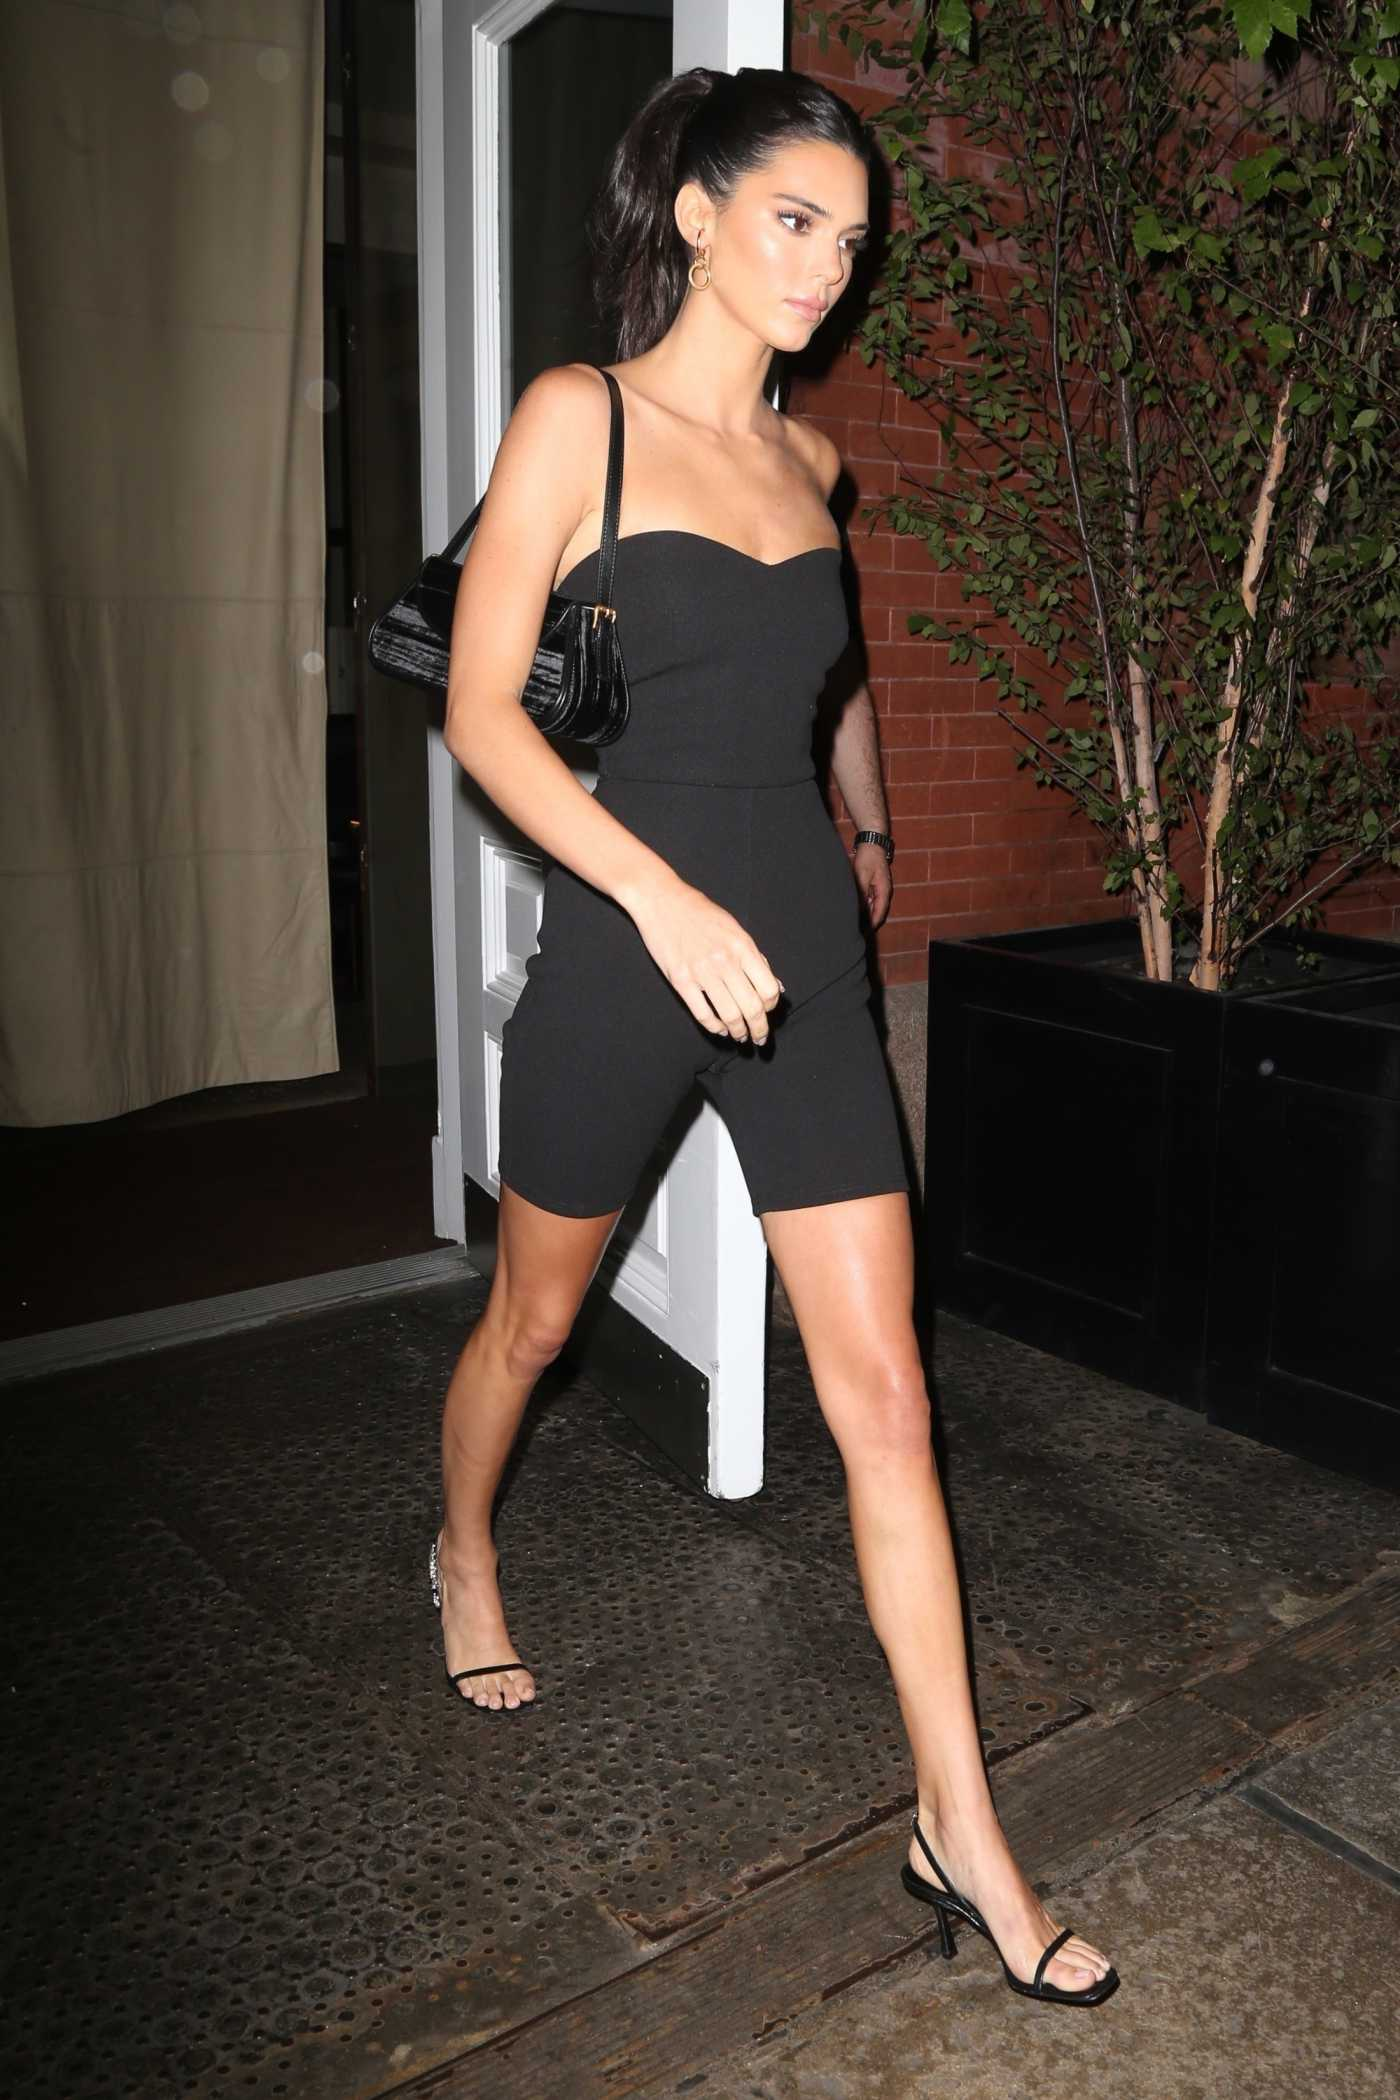 Kendall Jenner in a Black Form Fitting Shorts Out for Dinner at Cipriani in New York 09/07/2019